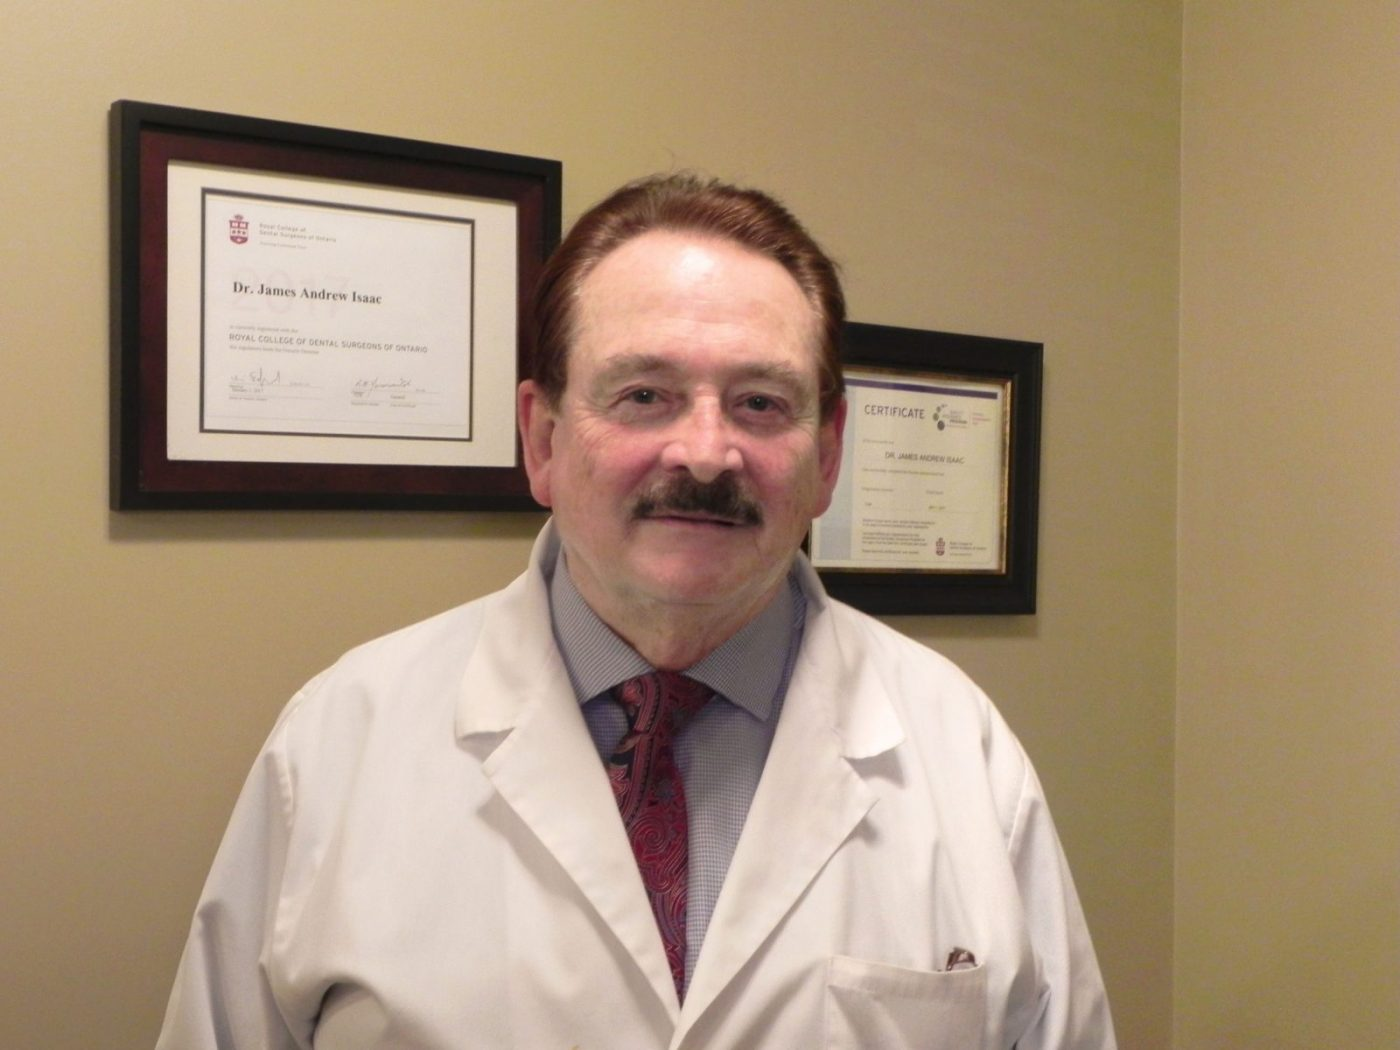 Dr. James Isaac at Milton Central Family Dentistry Dental office in Milton